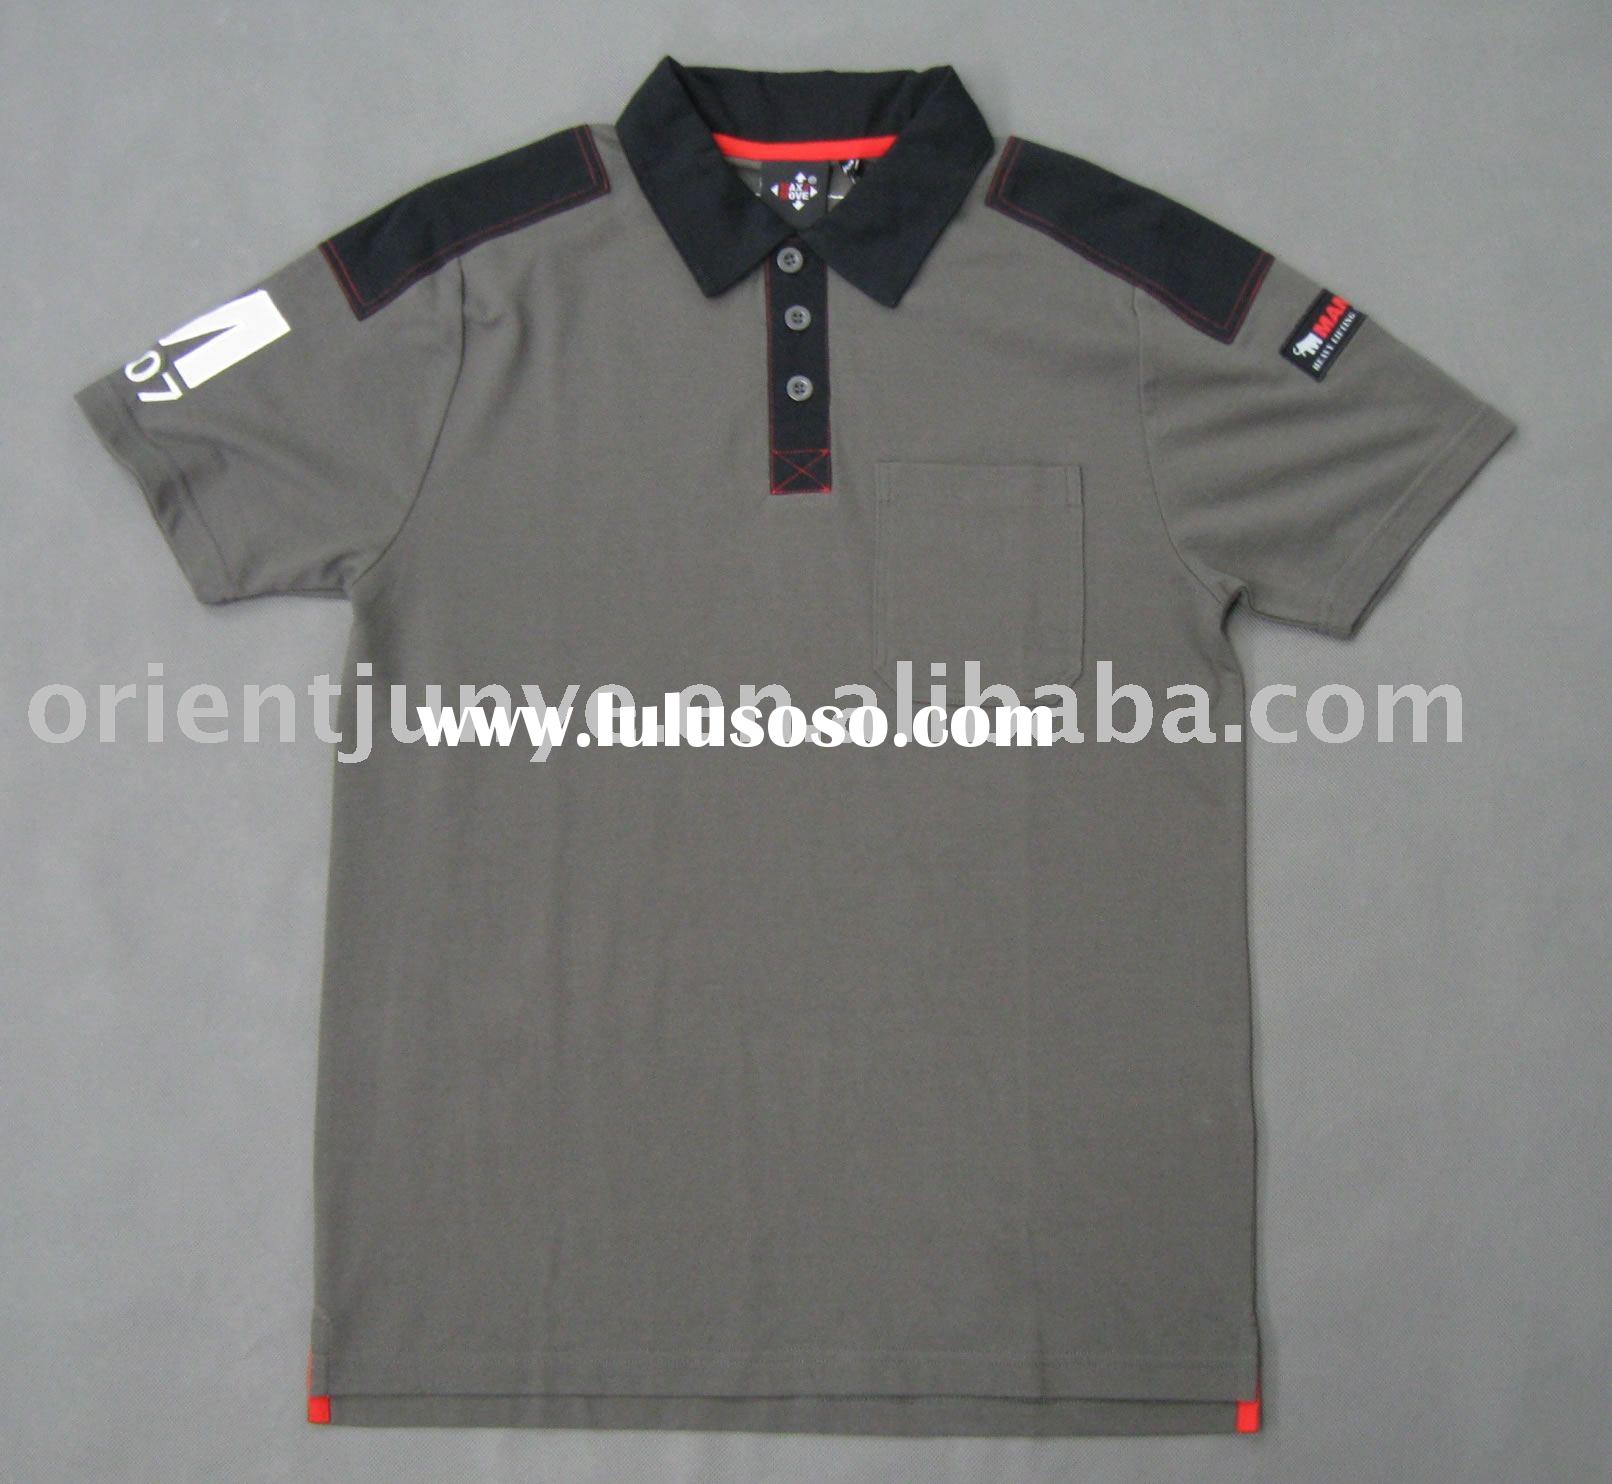 Men's polo T-shirt with patch on shoulder